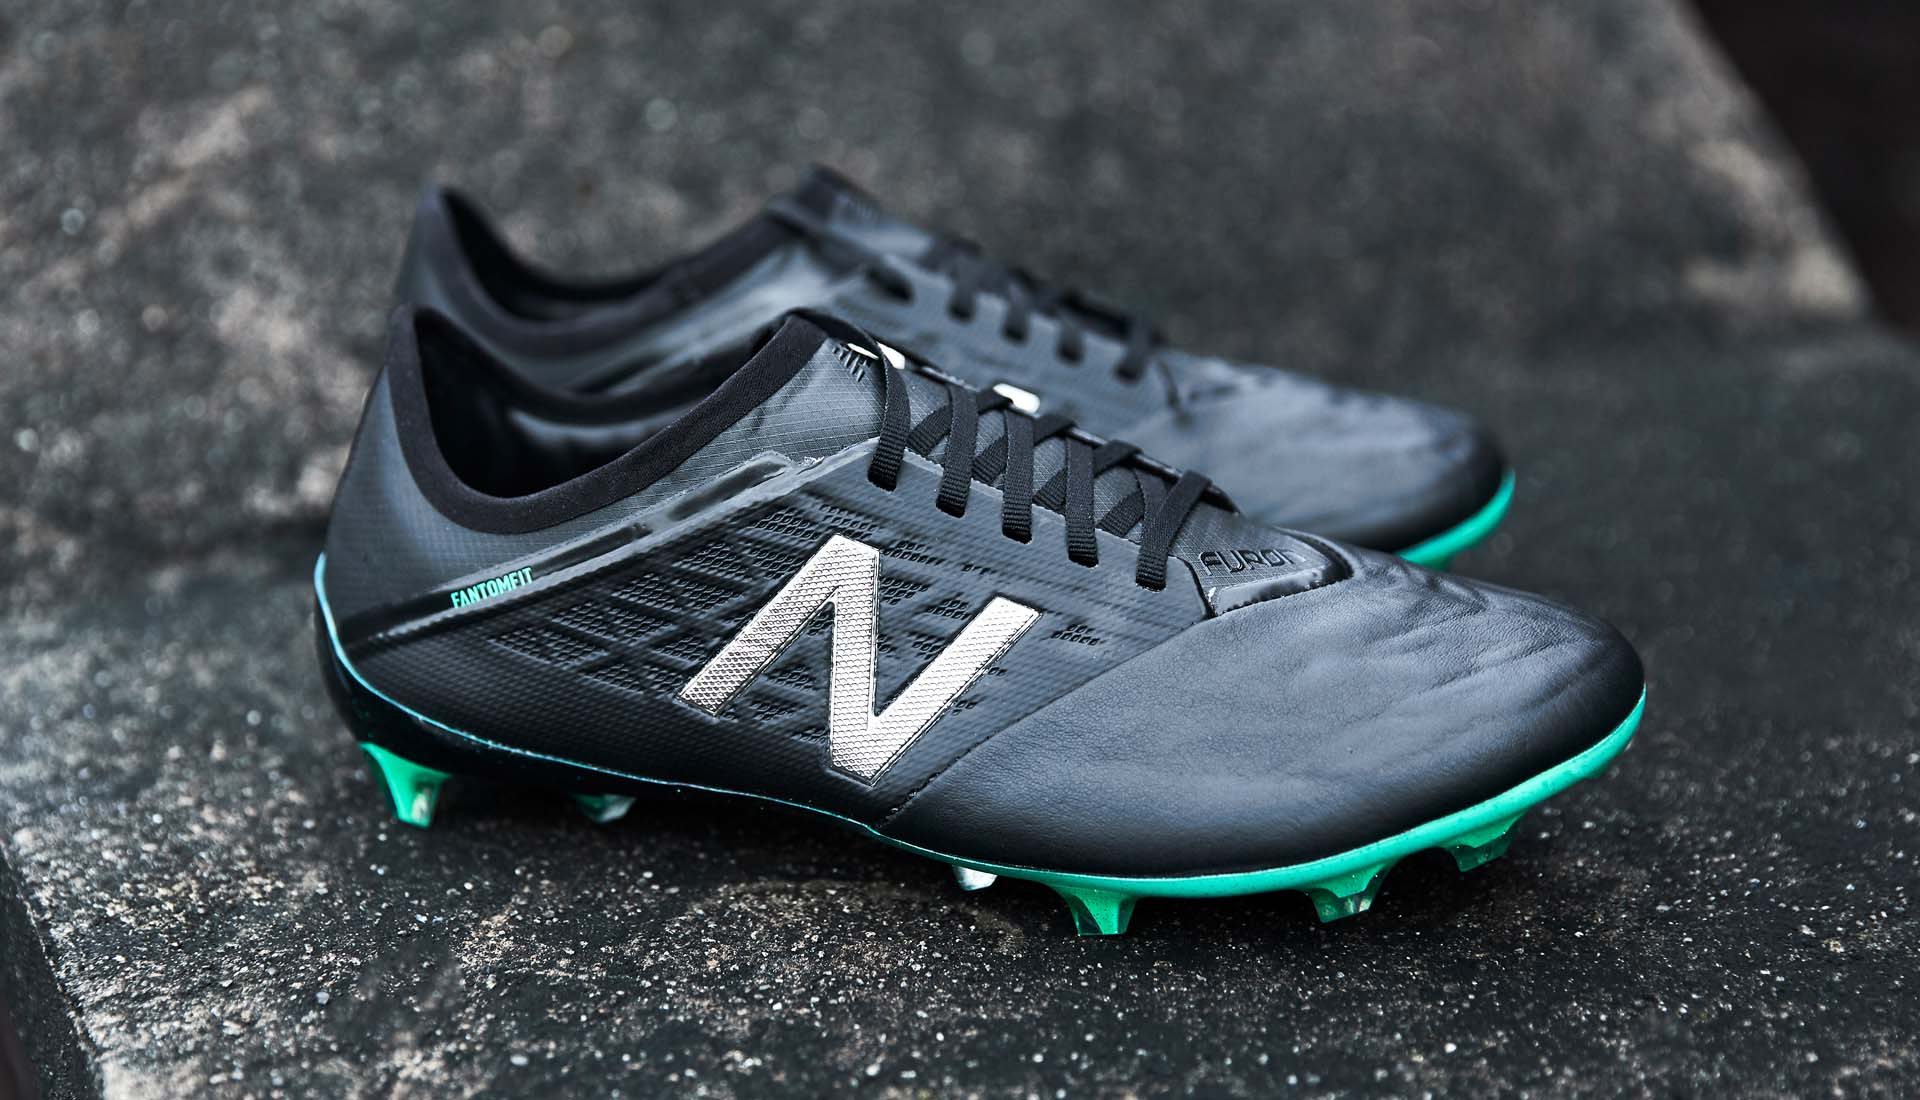 1b13cf0a2e7c6 New Balance Launch The Furon V5 In Leather - SoccerBible